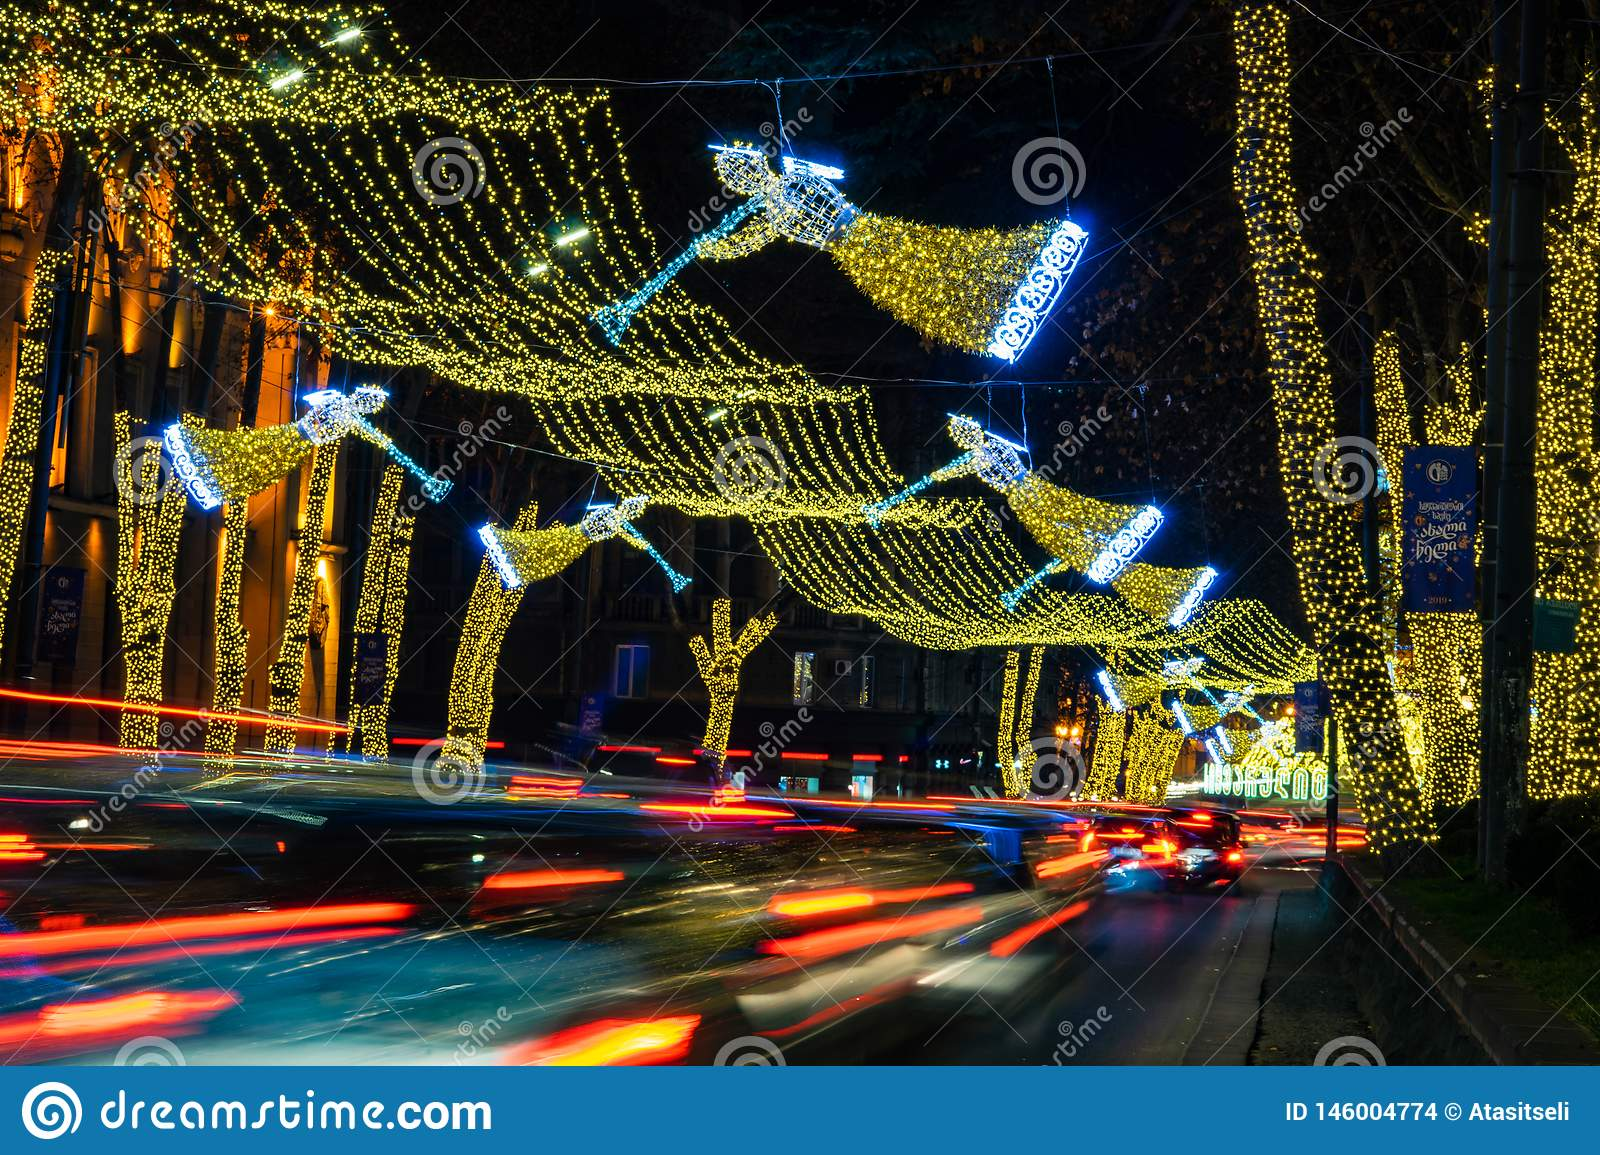 Christmas In Georgia Tbilisi.Christmas Illumination In Tbilisi Georgia Stock Photo